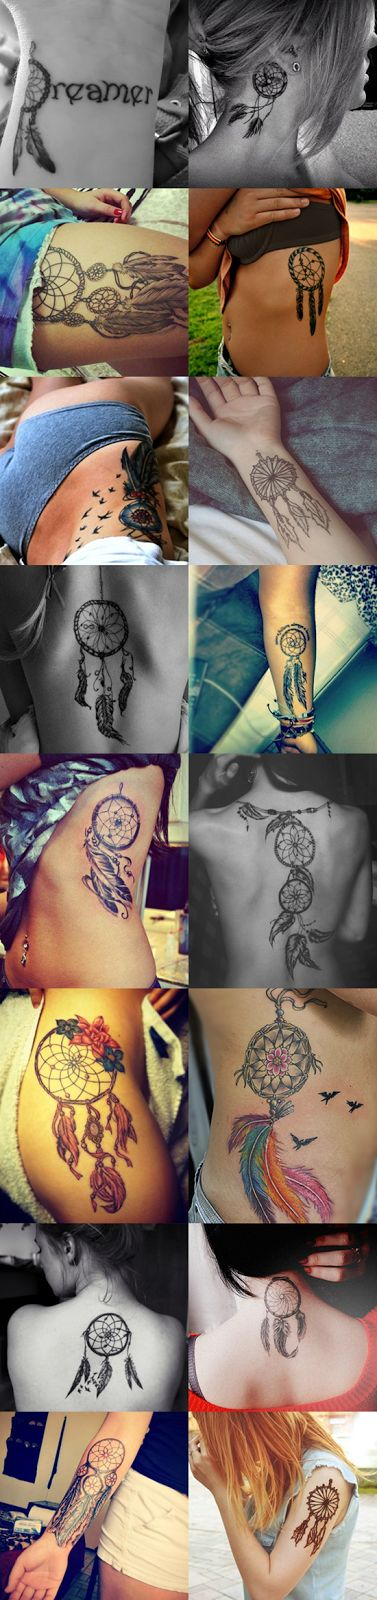 Def want a dream catcher.. Another favorite thing of mom's :) just don't know where,  so many options!